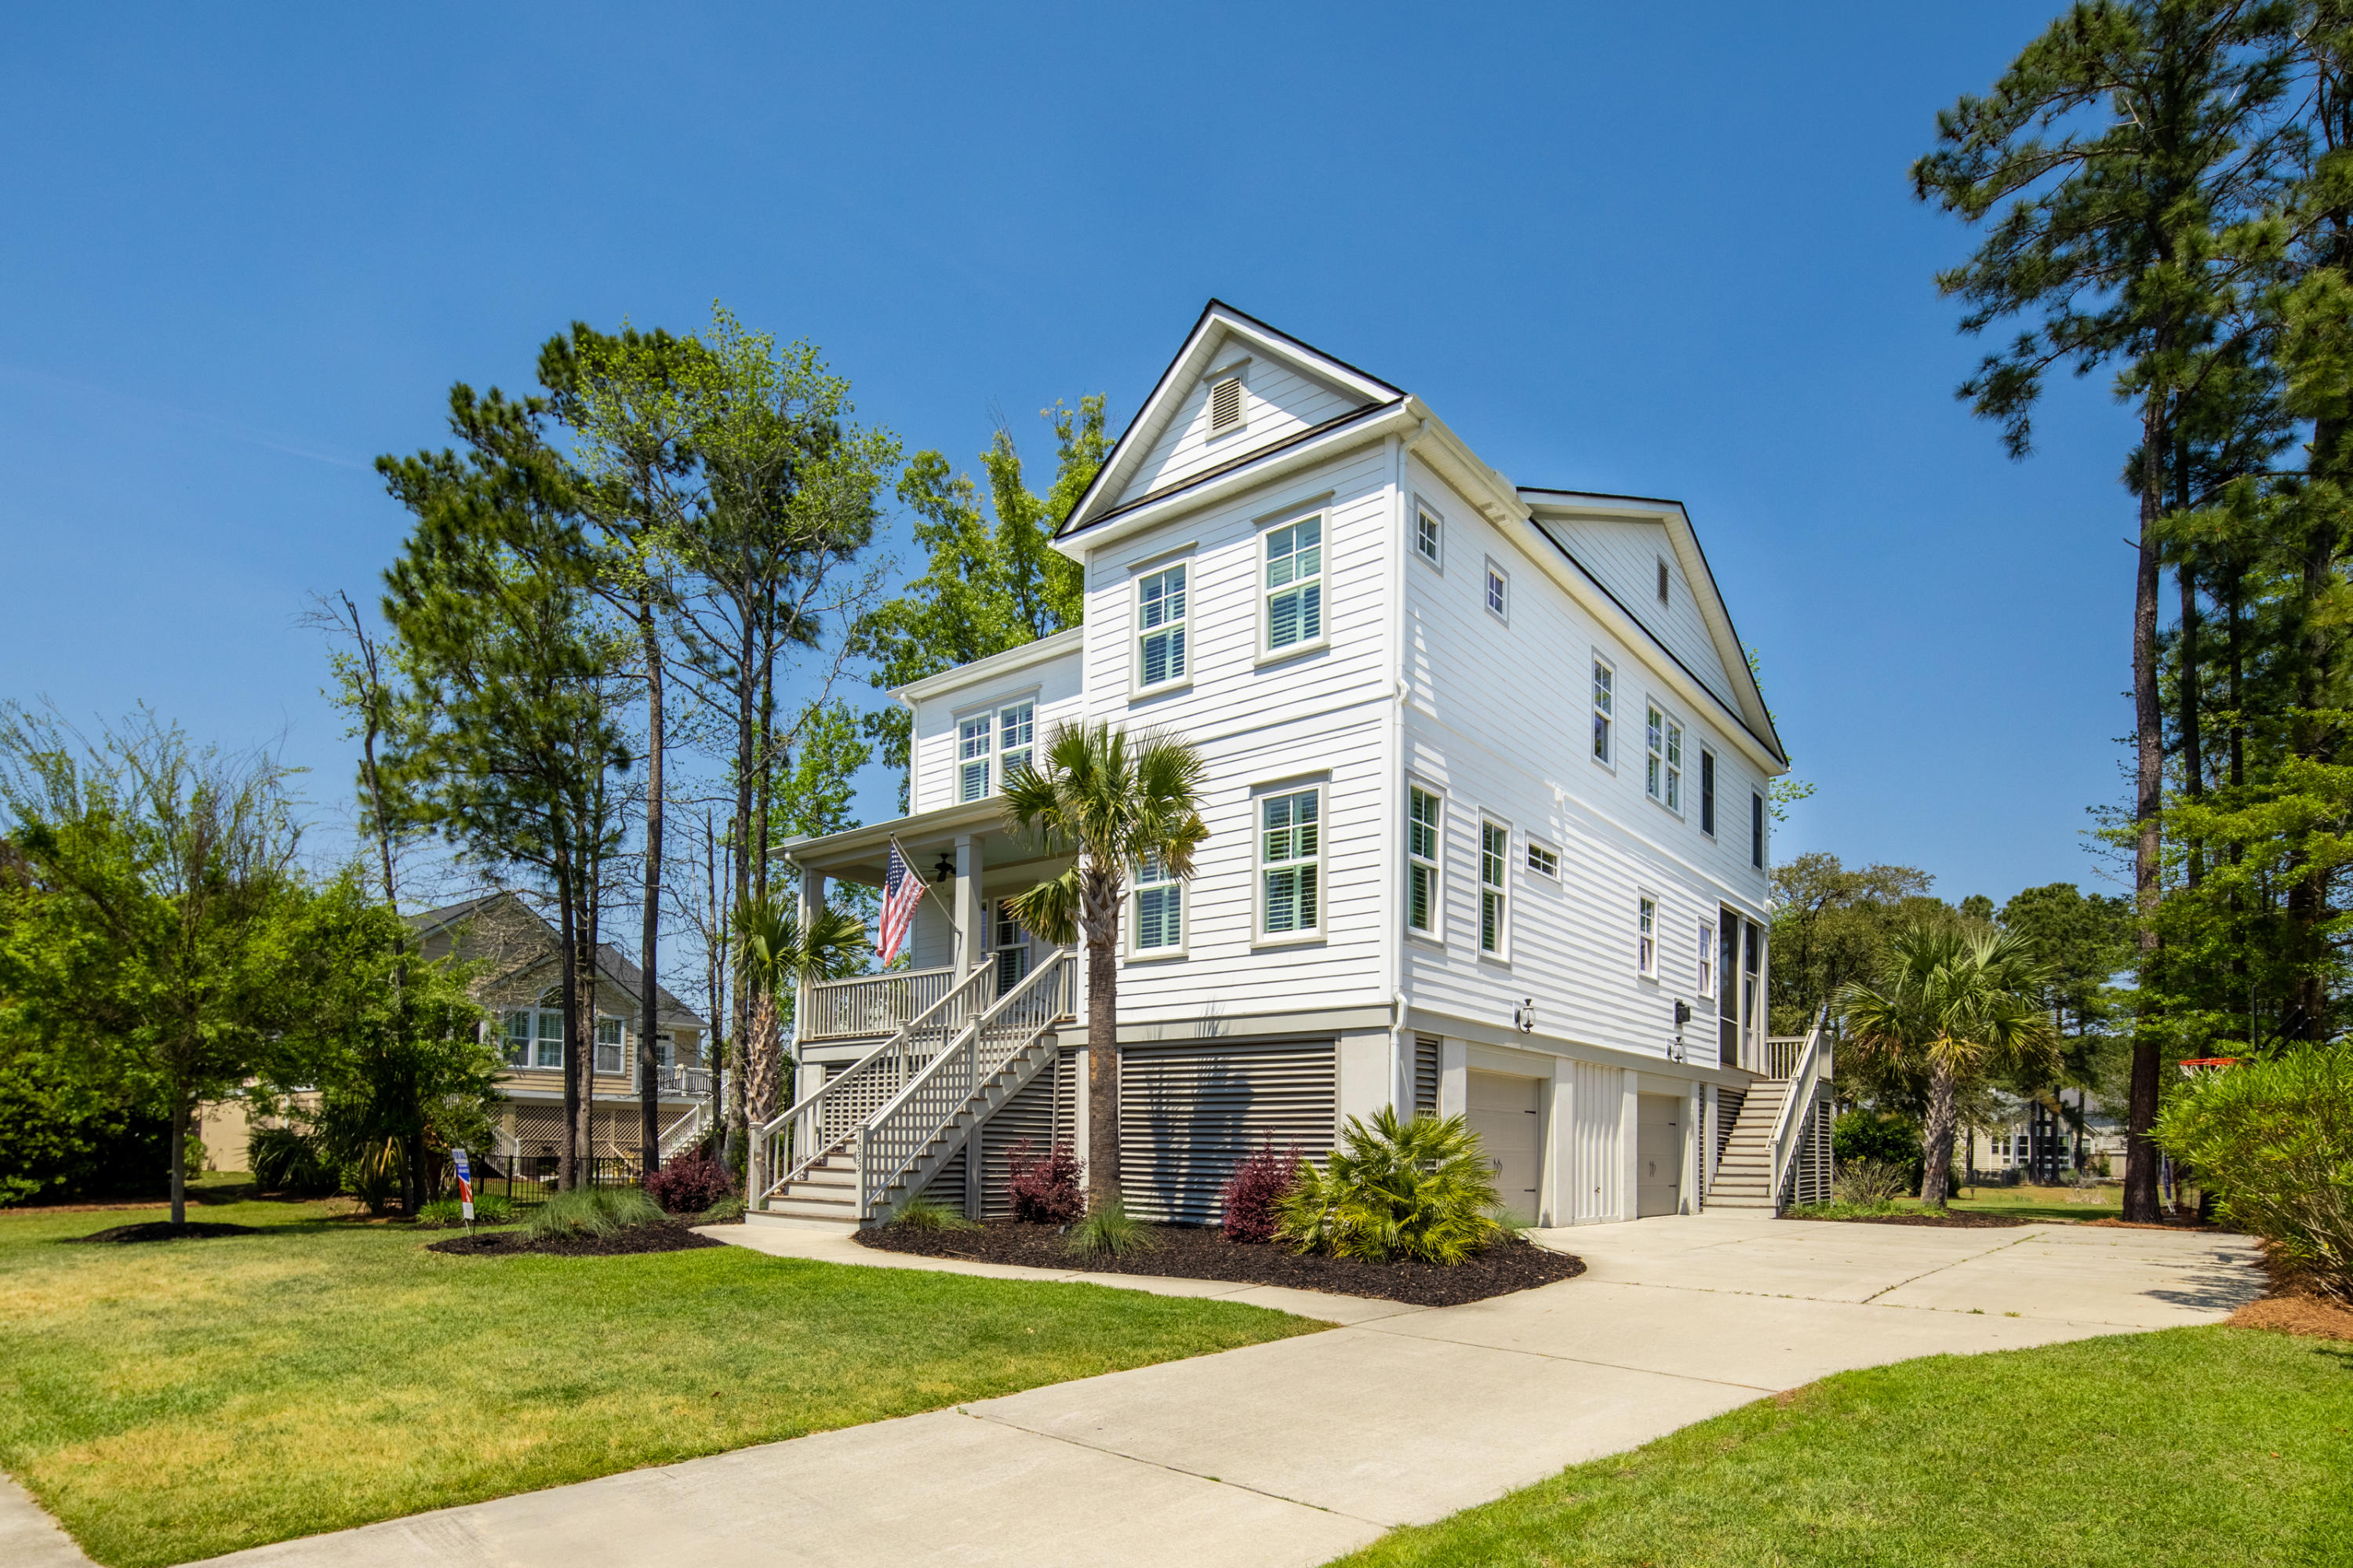 Rivertowne Country Club Homes For Sale - 1633 Rivertowne Country Club, Mount Pleasant, SC - 32